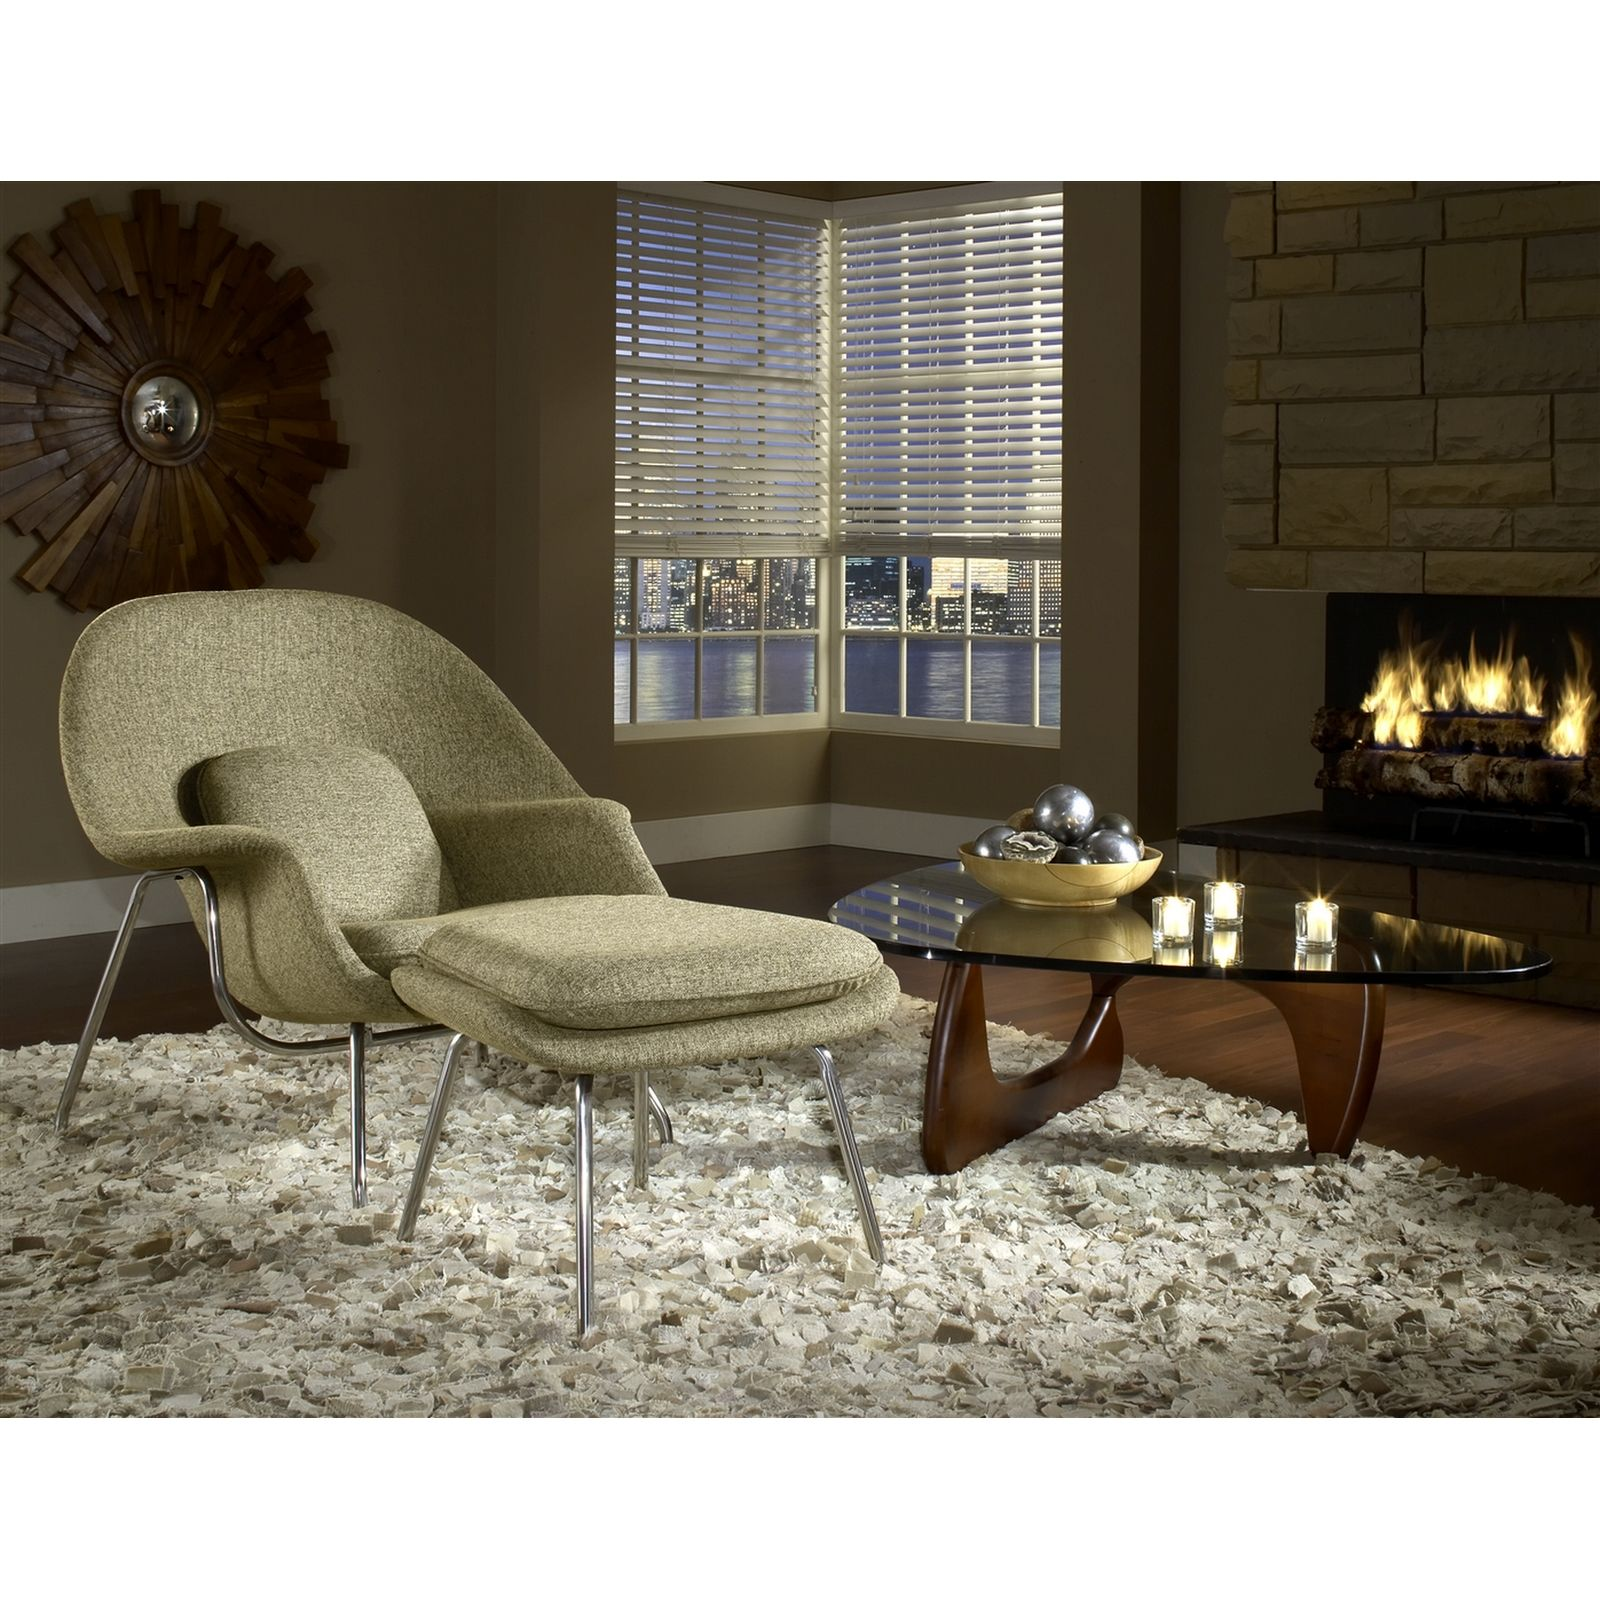 Eero Saarinen Style Womb Chair Ottoman Set in Oatmeal Isamu